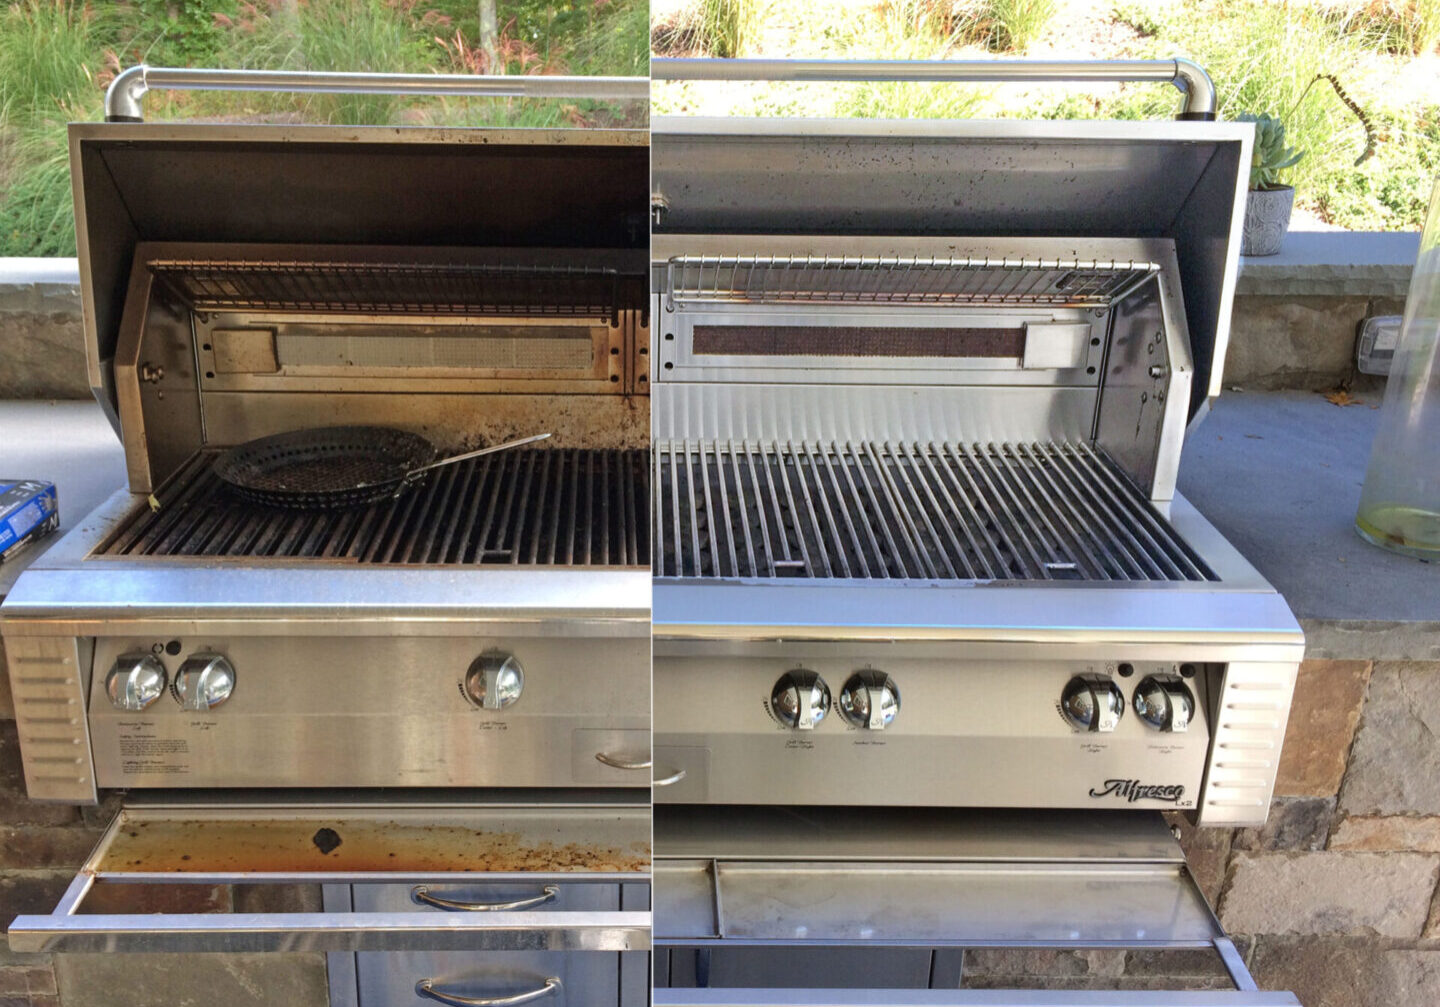 Alfresco grill Before and after bbq cleaning